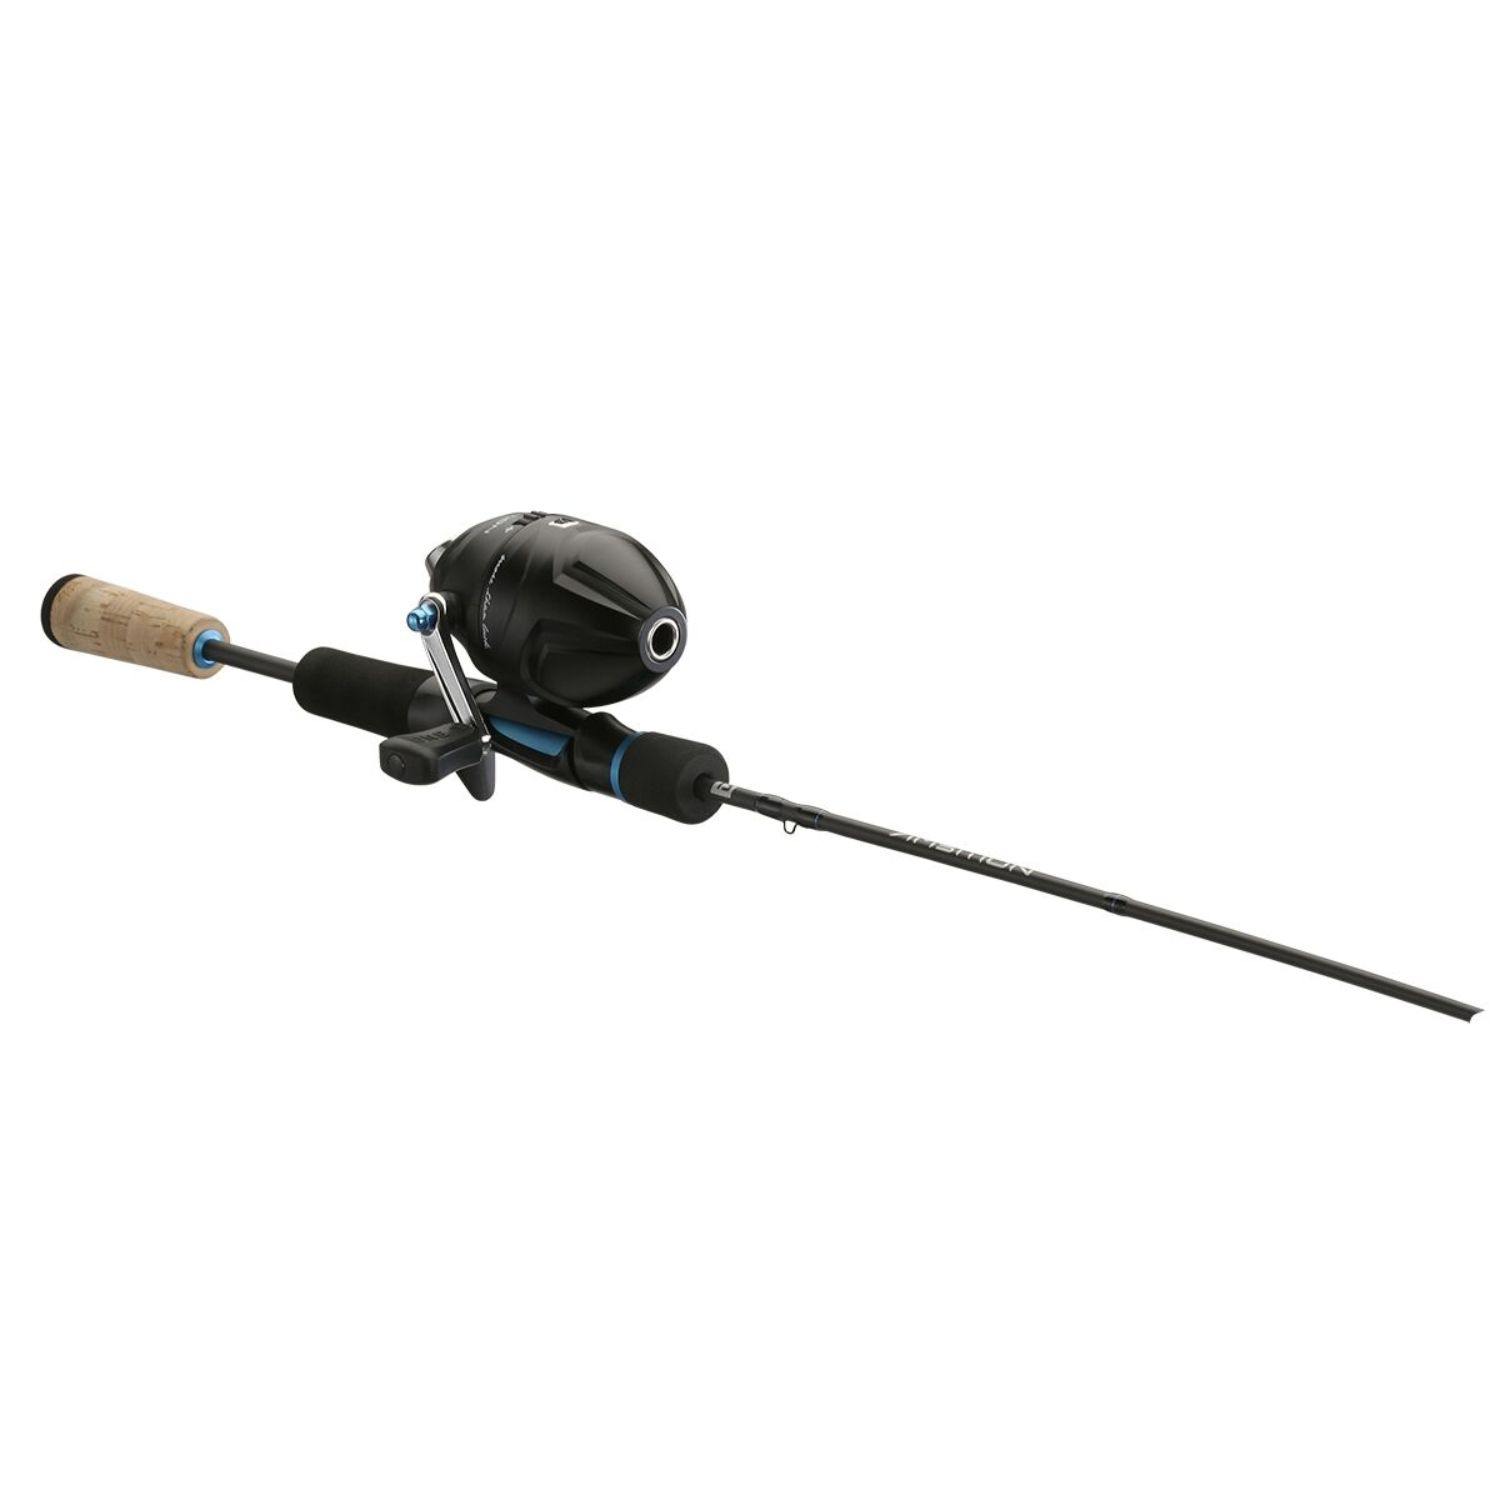 13 Fishing Ambition 4 ft 6 in ML Spincast Combo